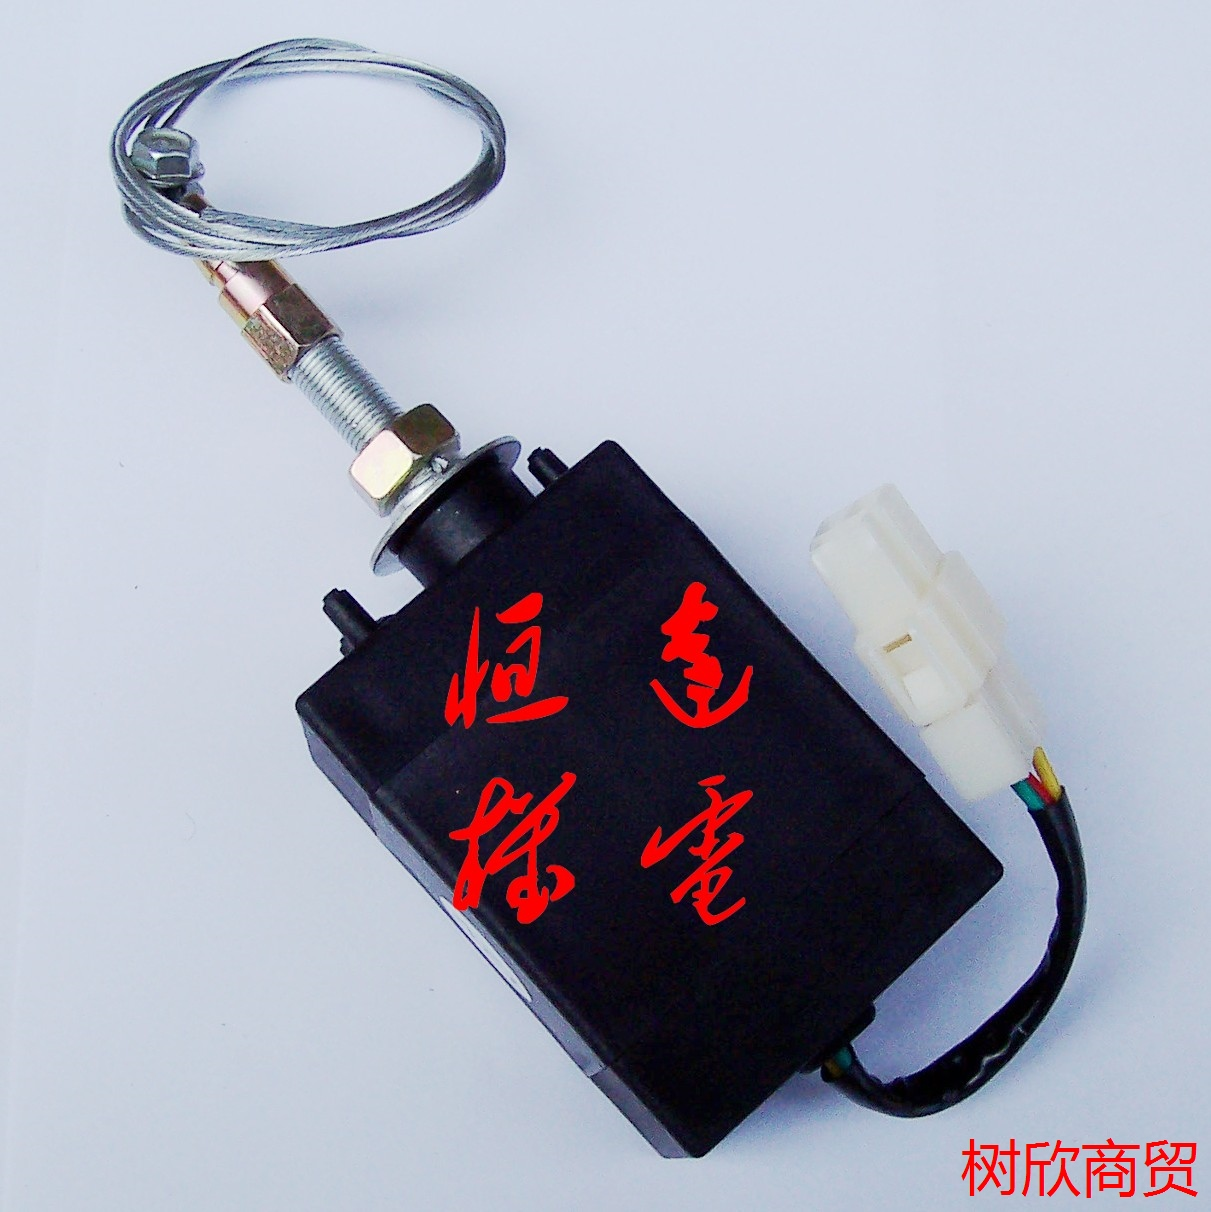 General purpose 24V diesel generator flameout electronic stop controller throttle switch for vehicle